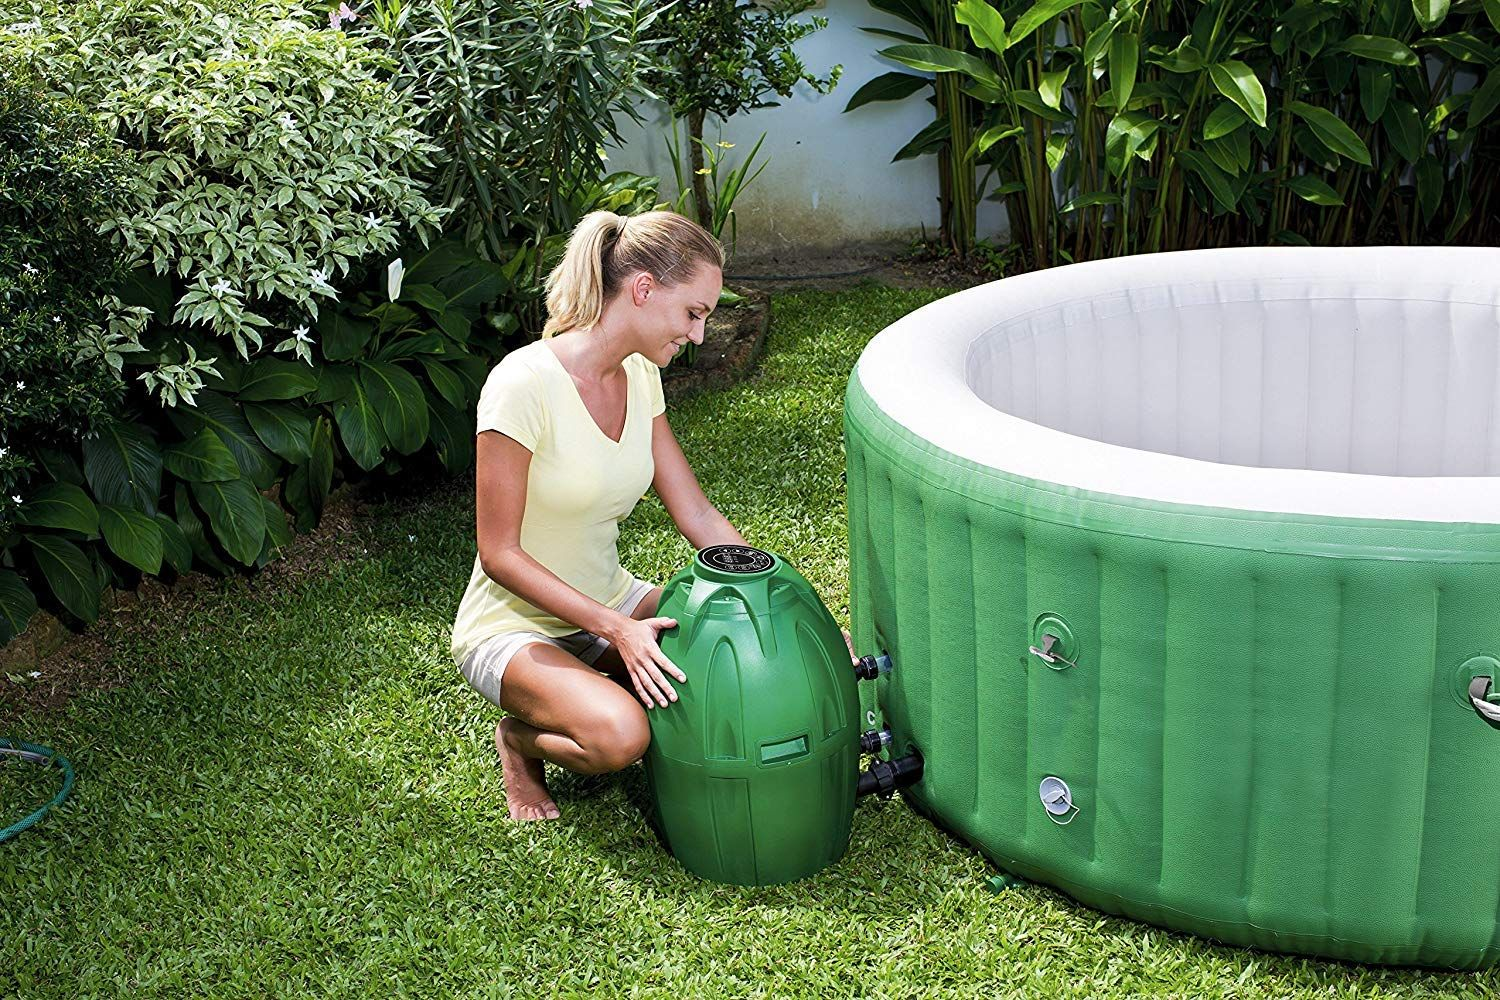 Fast, easy set up inflates using the spa's pump NO